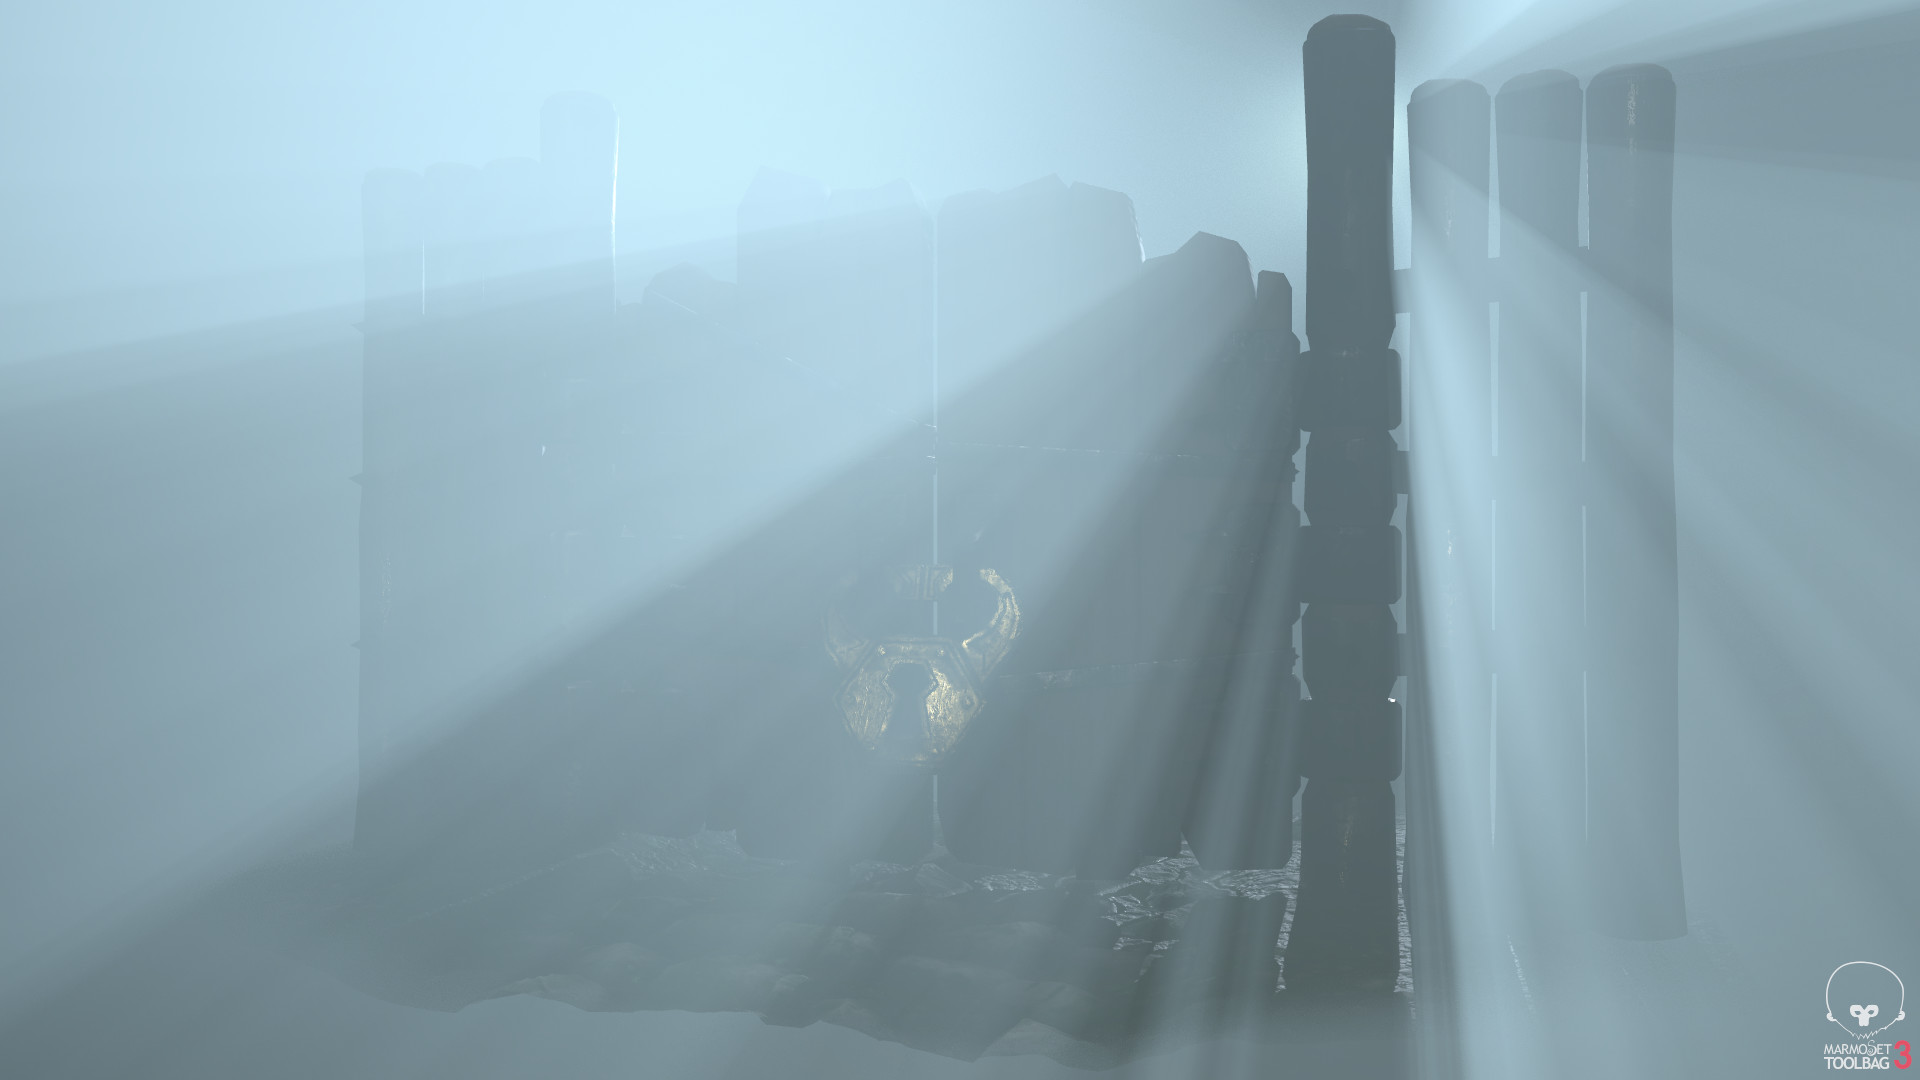 Having some fun with the fog in Marmoset Toolbag.